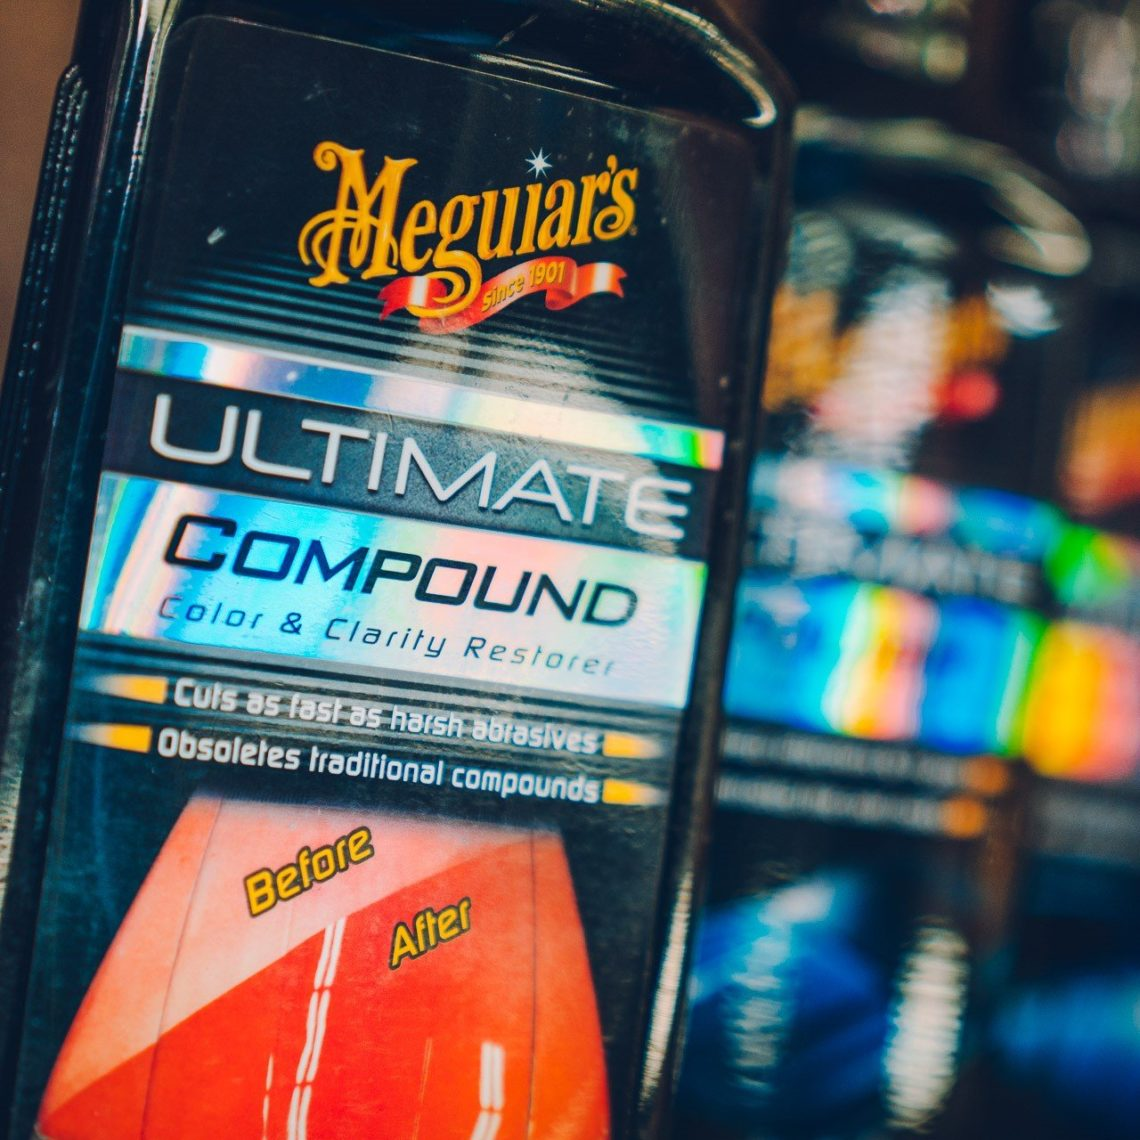 Meguiar's ME G17216 Ultimate Compound - 6